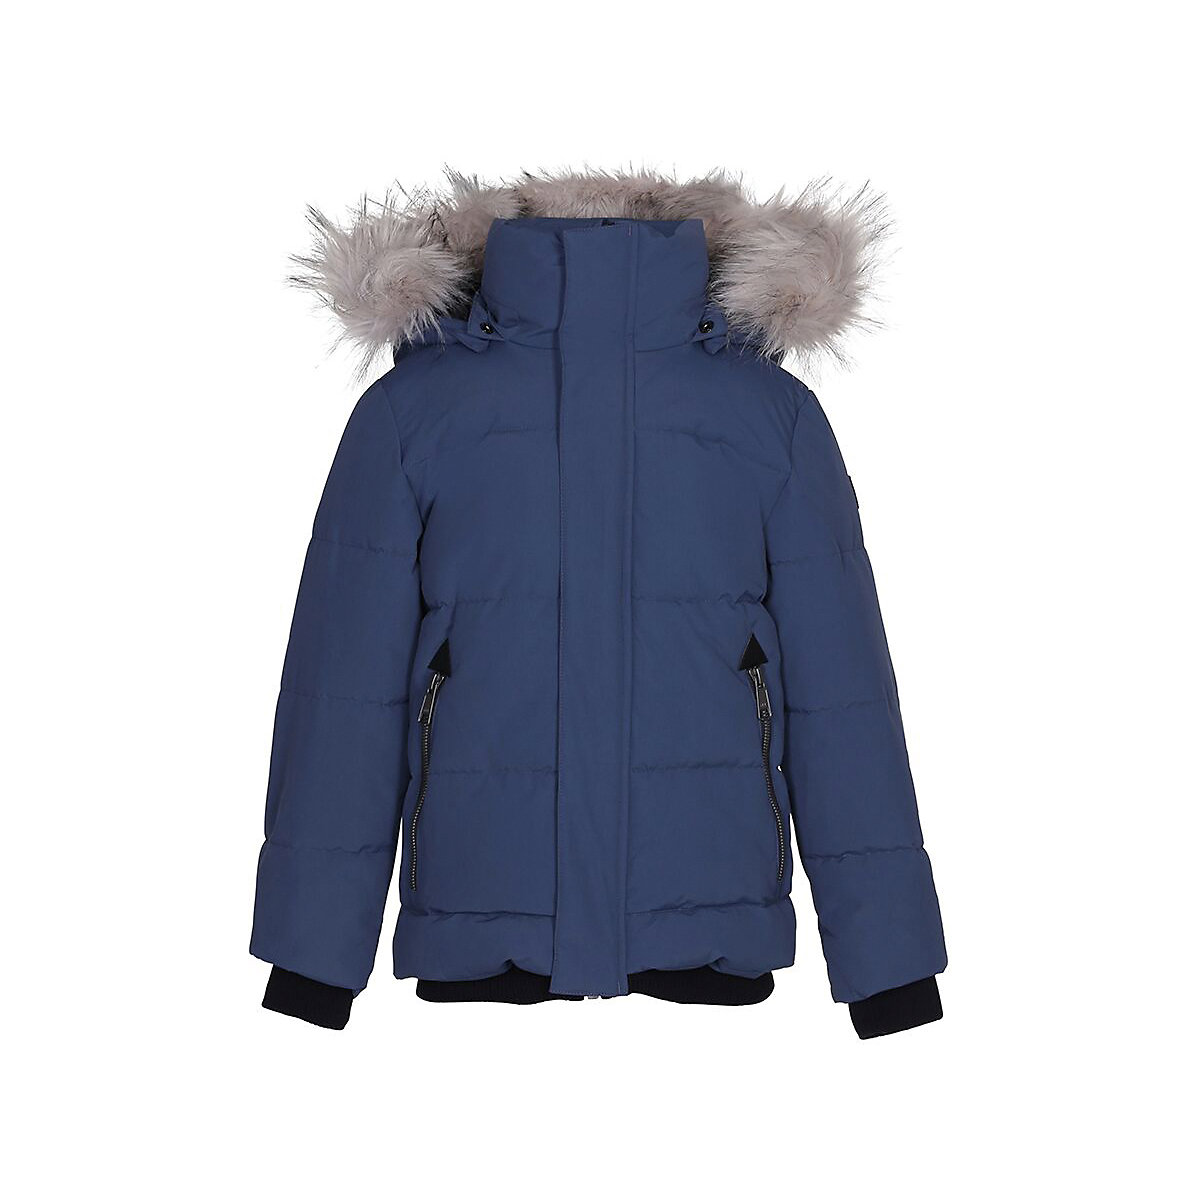 Jackets & Coats MOLO for boys 9170660 Jacket Coat Denim Cardigan Warm Children clothes Kids icebear 2018 short women parkas cotton padded jacket new fashion women s windproof thin cotton jacket warm jacket 16g6117d